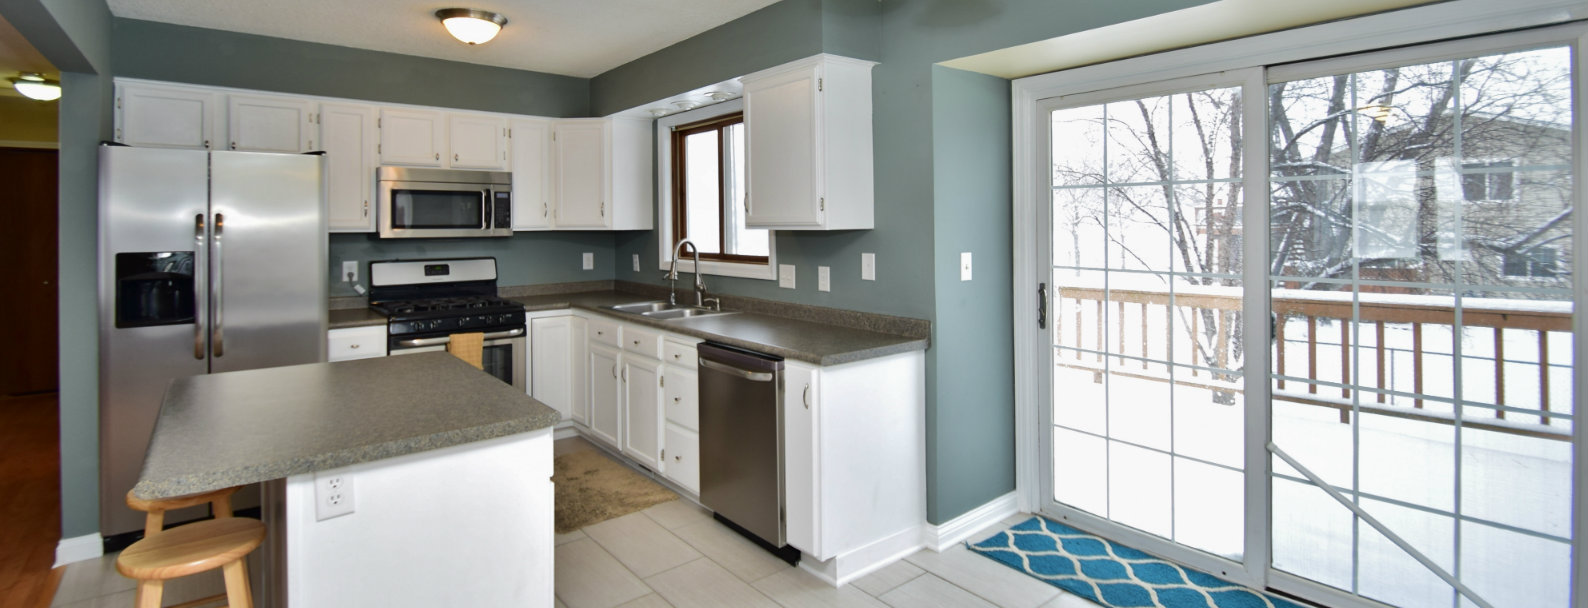 Wonderful updates in this Blaine home for sale